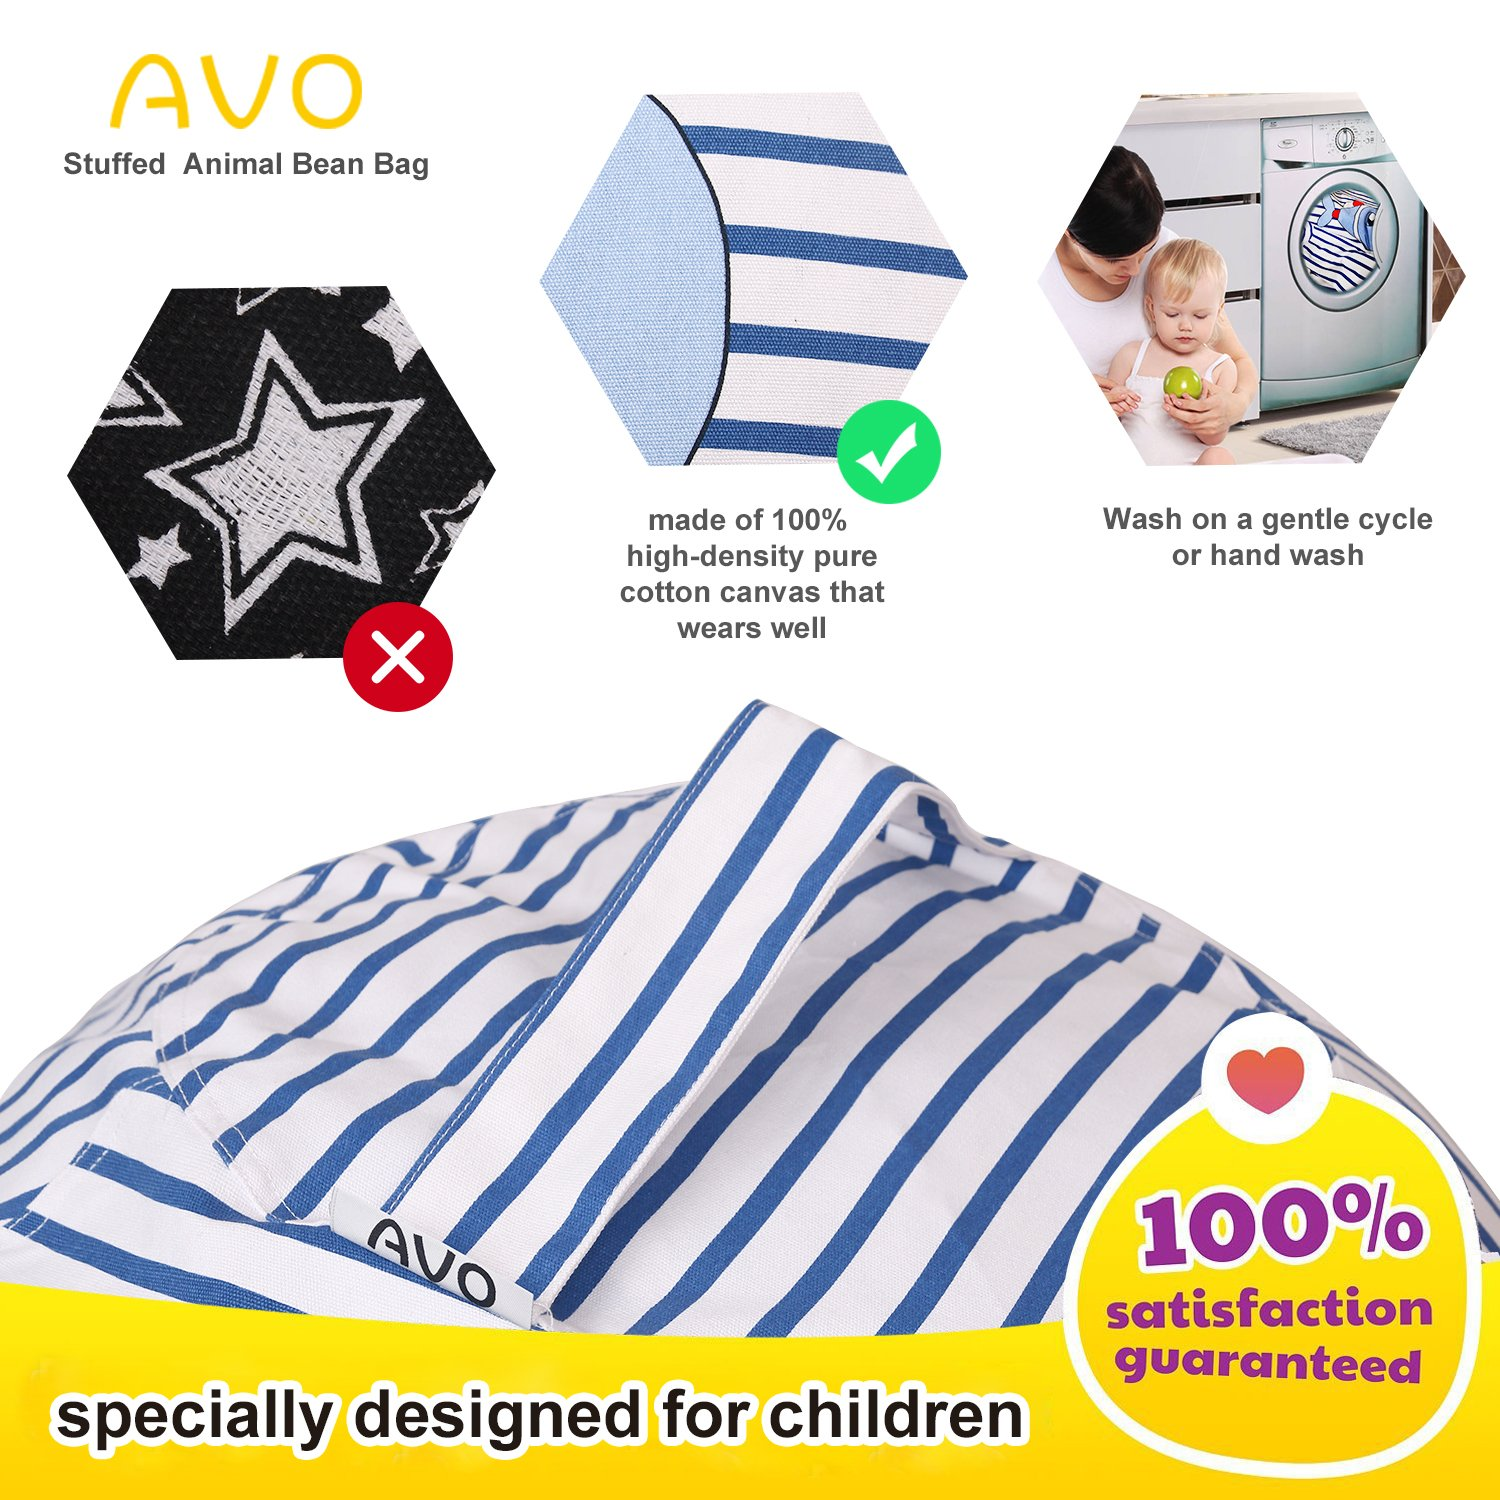 Extra-Large Stuffed Animal Storage Bean Bag-100% high-density(Kids Bean Bag 38'', fish) by AUO (Image #4)